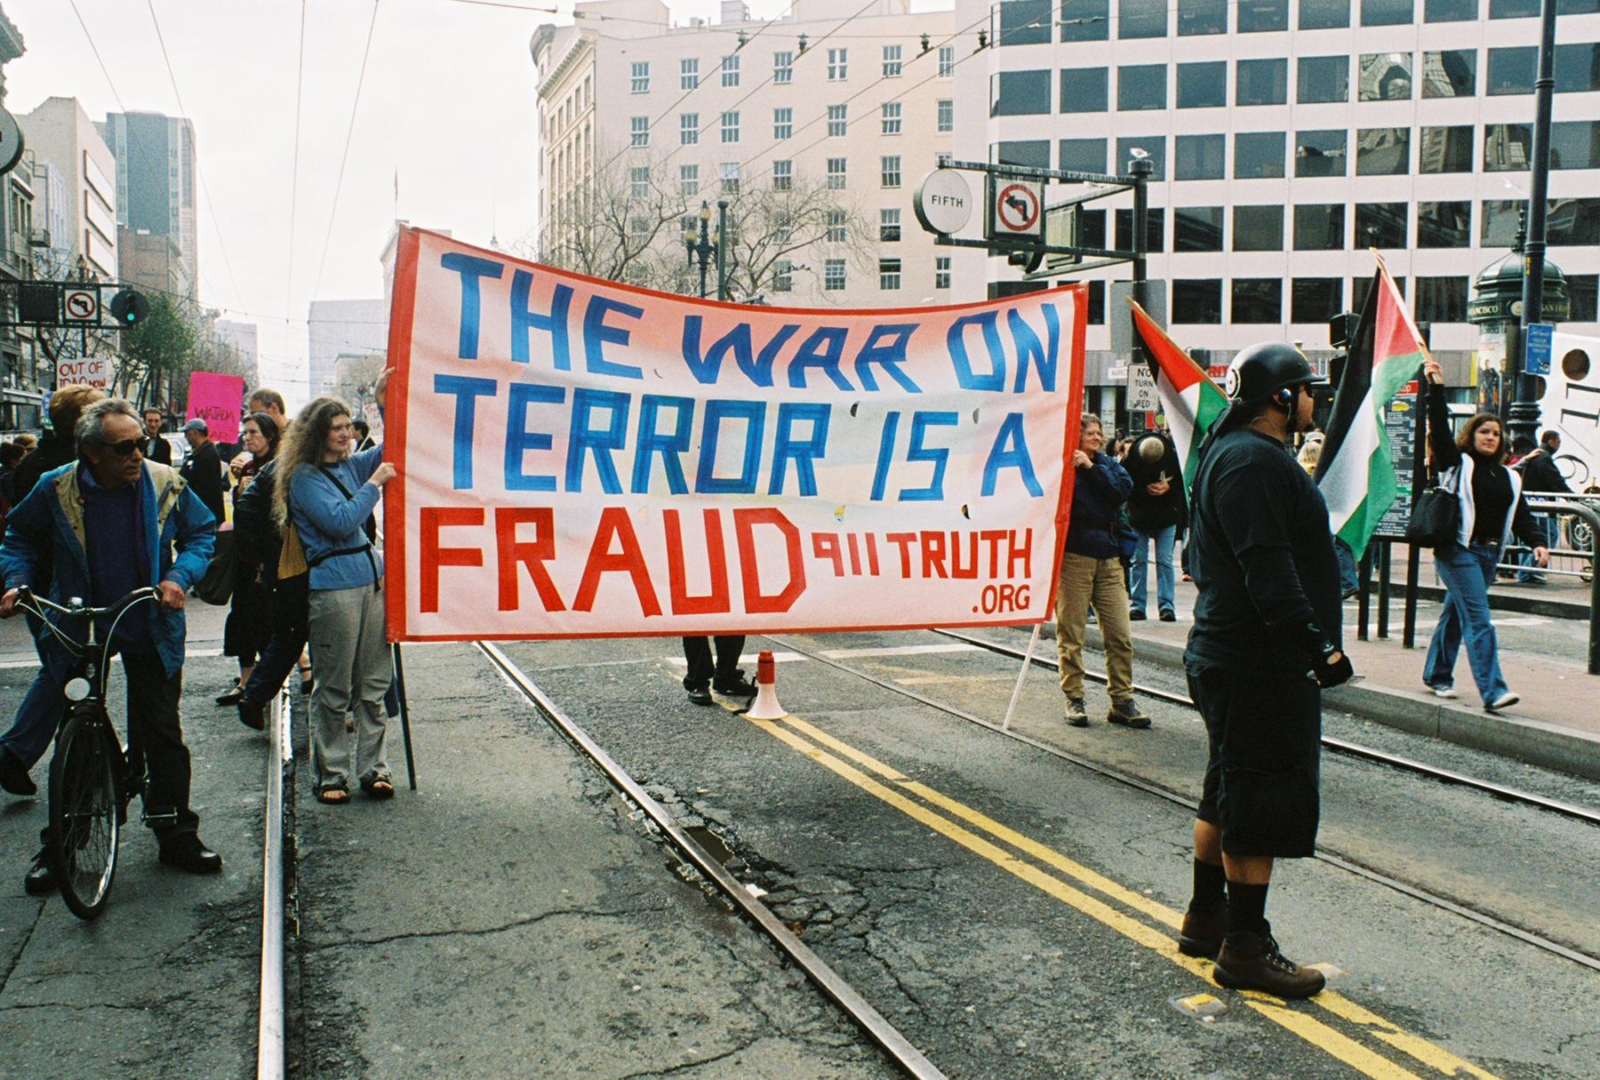 Evidence of Fraud in the War on Terror